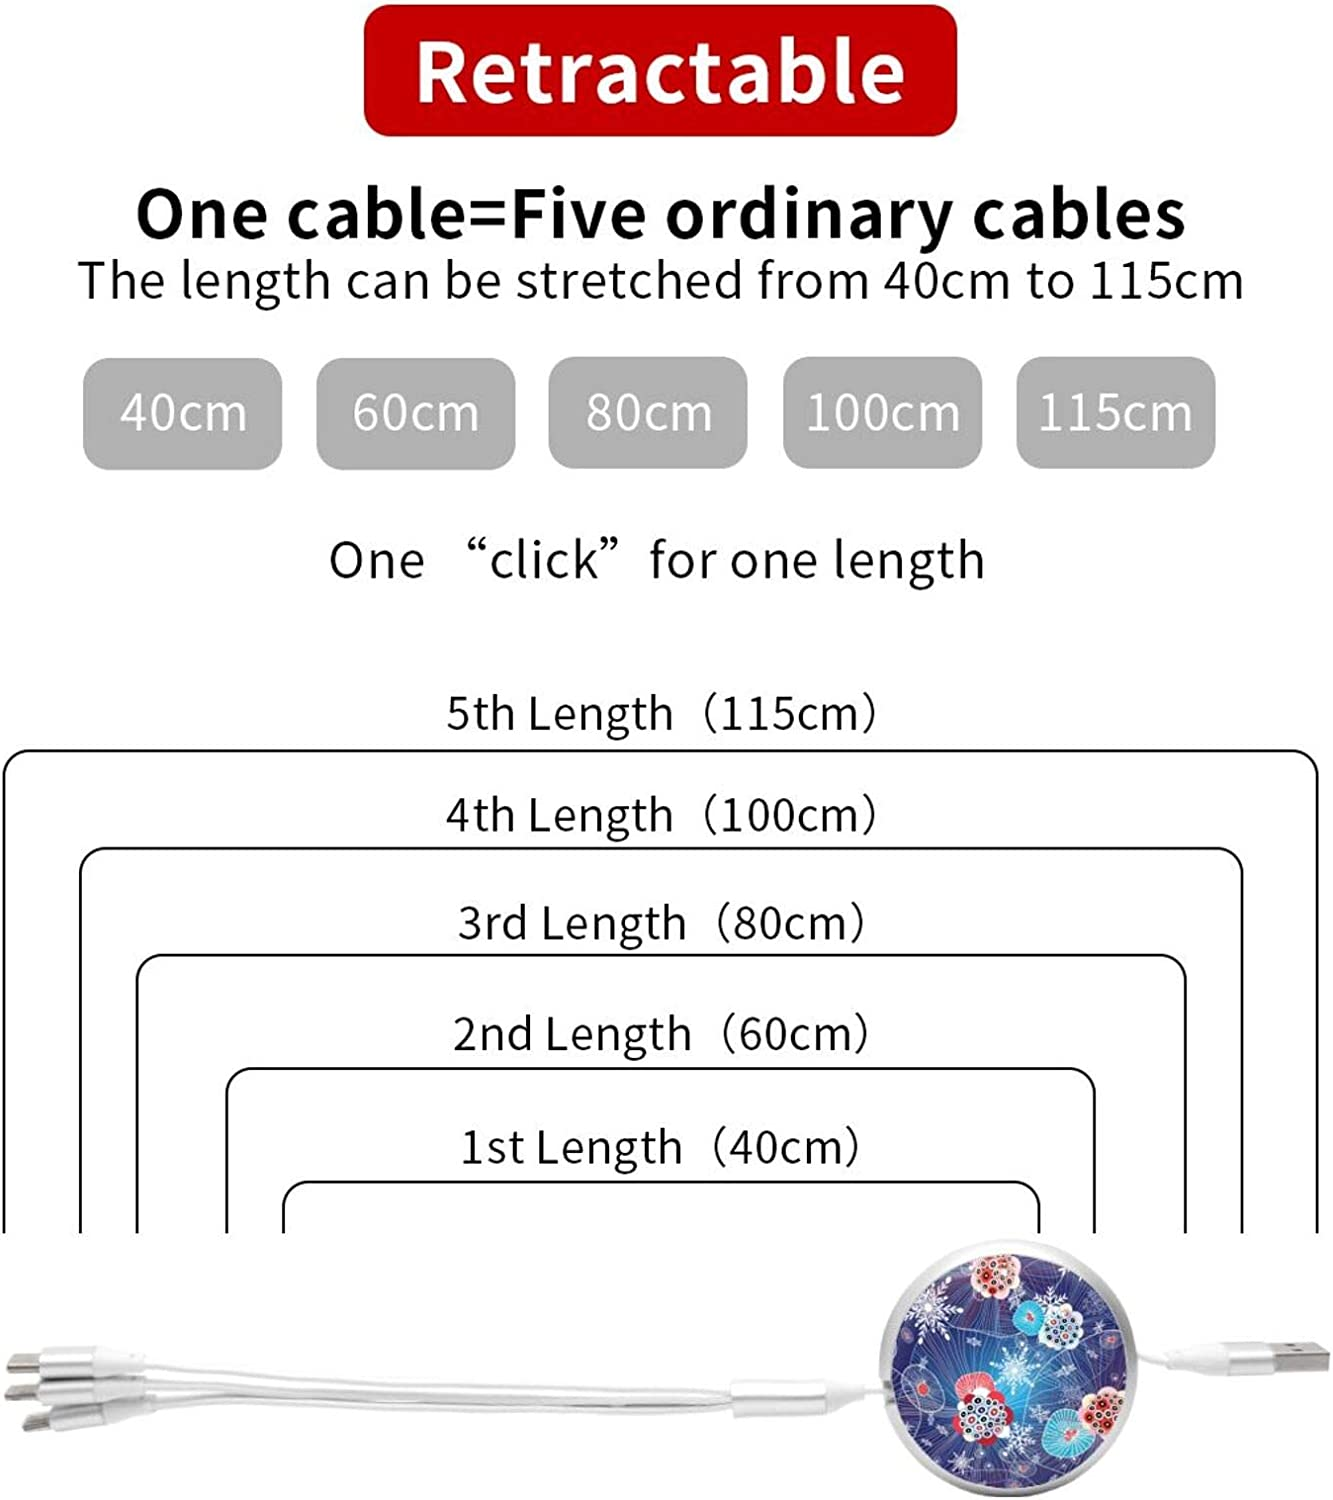 Multi Charging Cable Portable 3 in 1 Abstract Winter Pattern with Snowflakes USB Cable USB Power Cords for Cell Phone Tablets and More Devices Charging